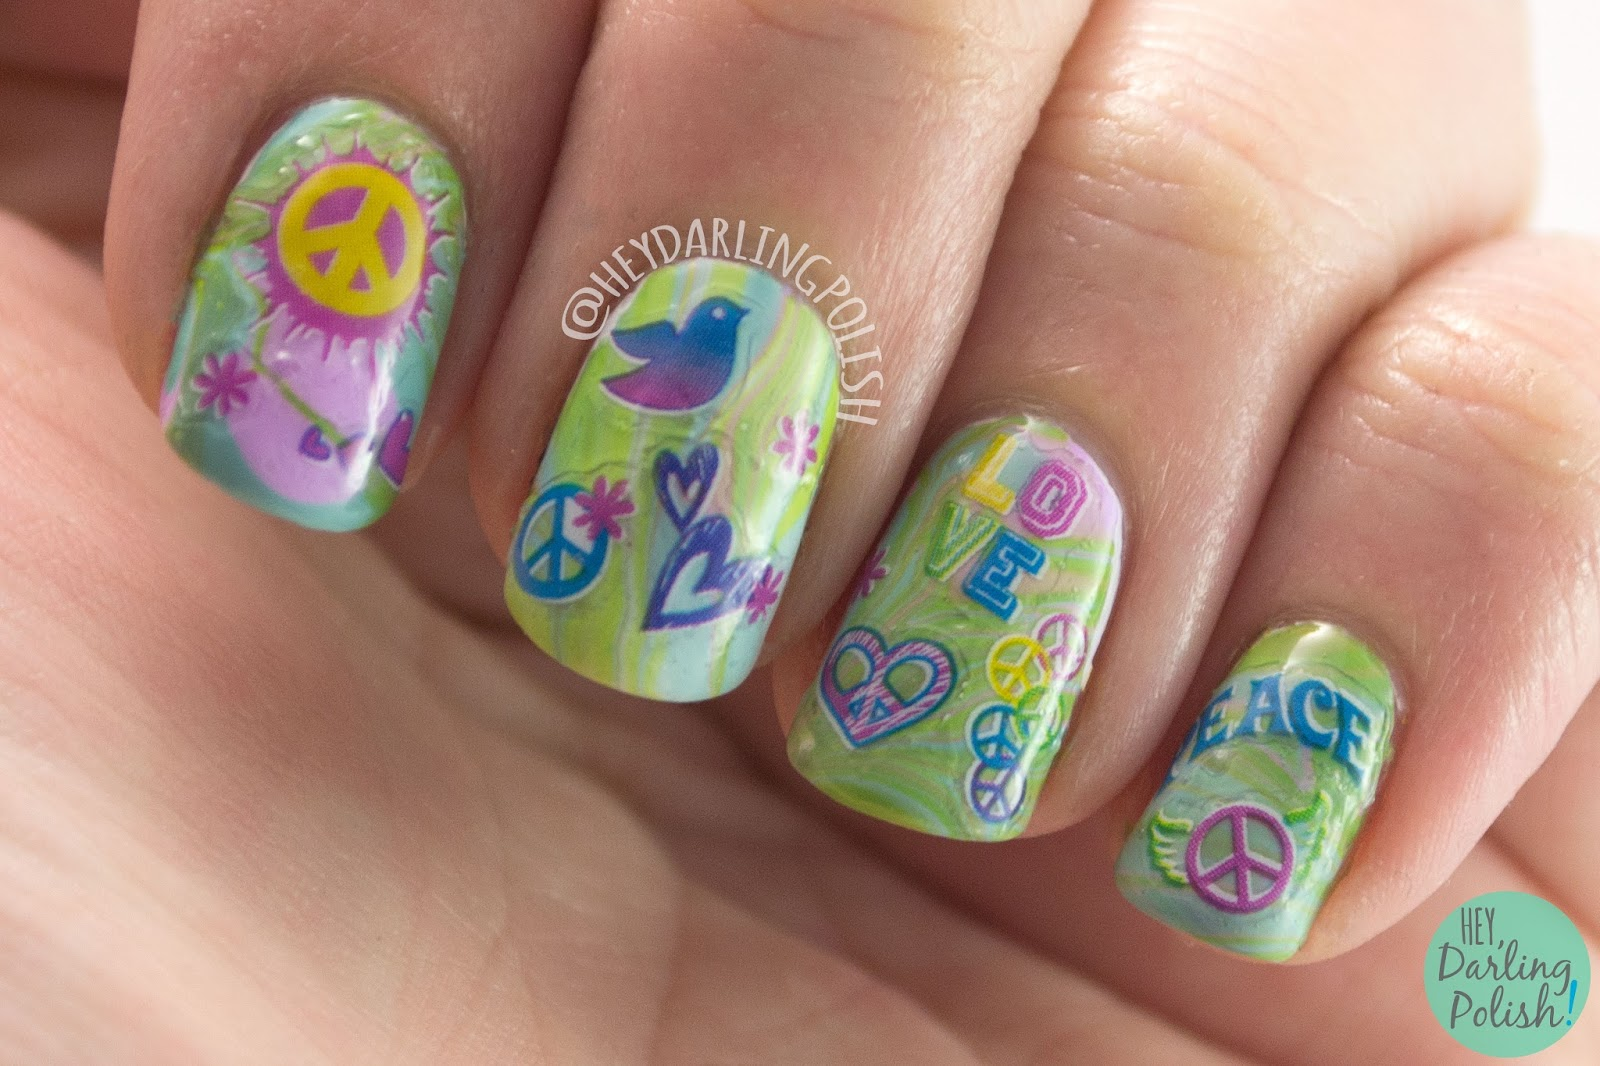 nails, nail art, nail polish, watermarble, decals, hey darling polish, hippy, 60s, 2015 cnt 31 day challenge